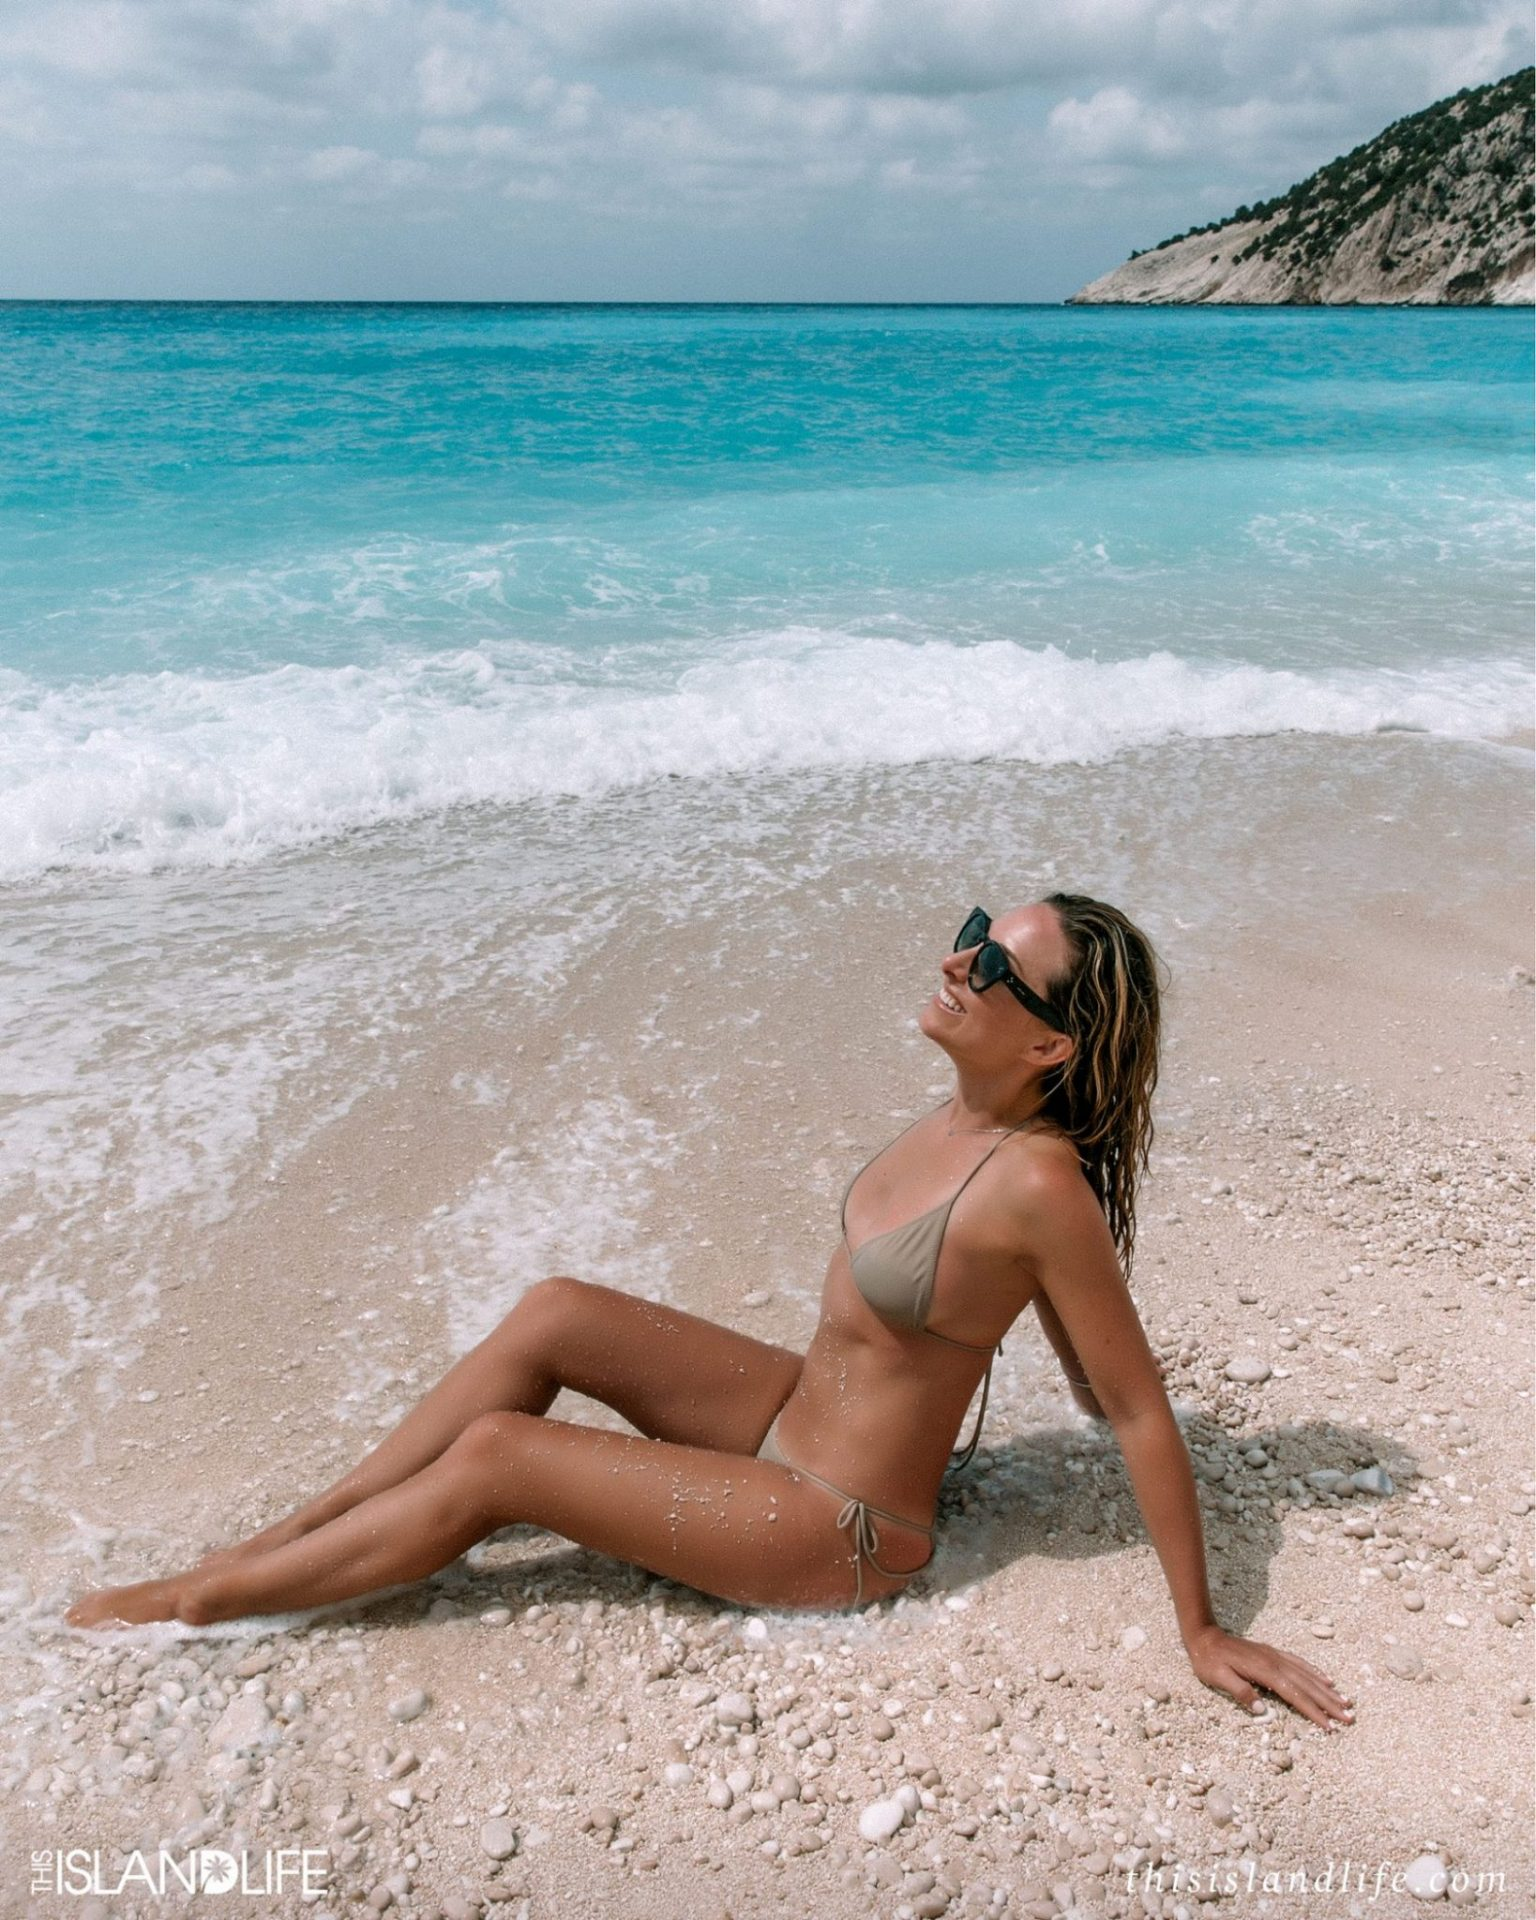 Warm Nude Beac Hlife Pictures